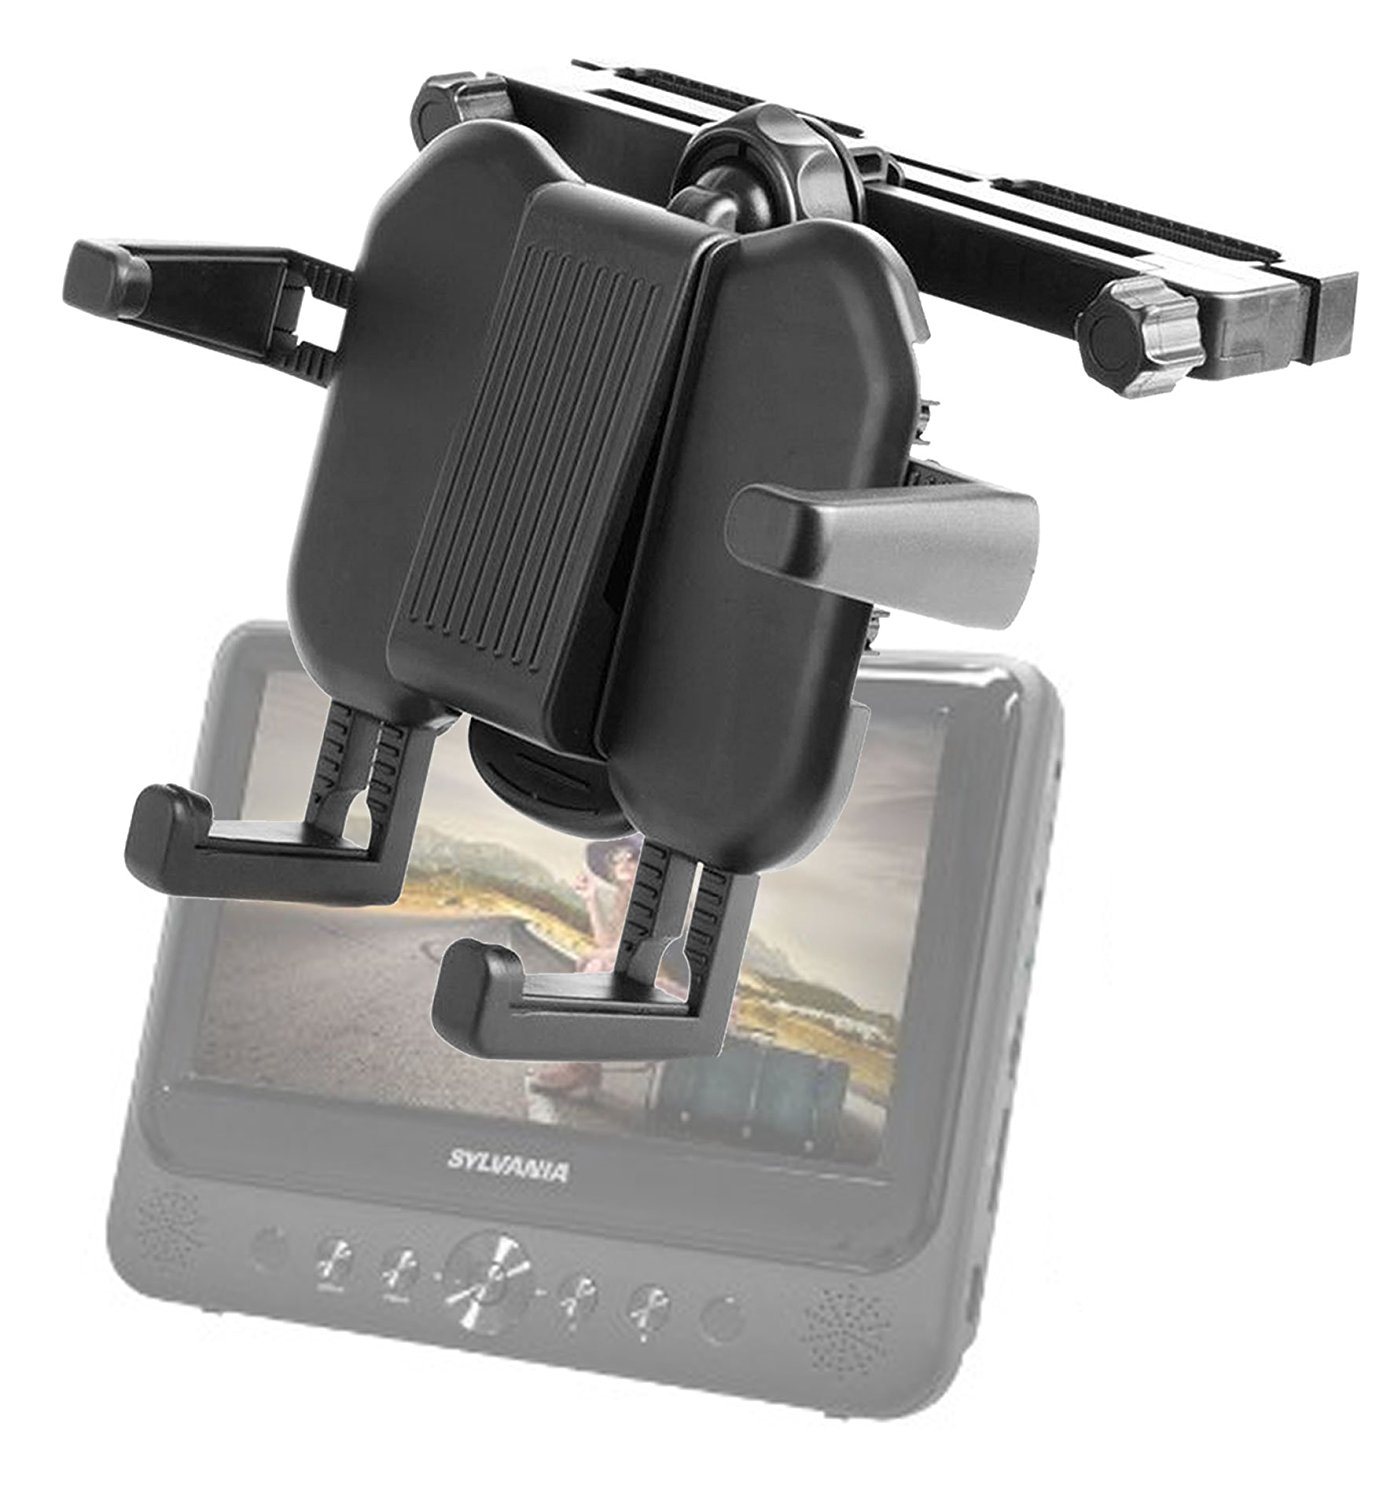 """DURAGADGET Headrest DVD Player Mount With Extendable Arms For Sylvania SDVD9805 9-Inch Dual Screen DVD Player, Argos Value Range 7"""", Bravolink 13.3"""" DVD Player, Voyager 7"""" Twin Screen DVD Player"""